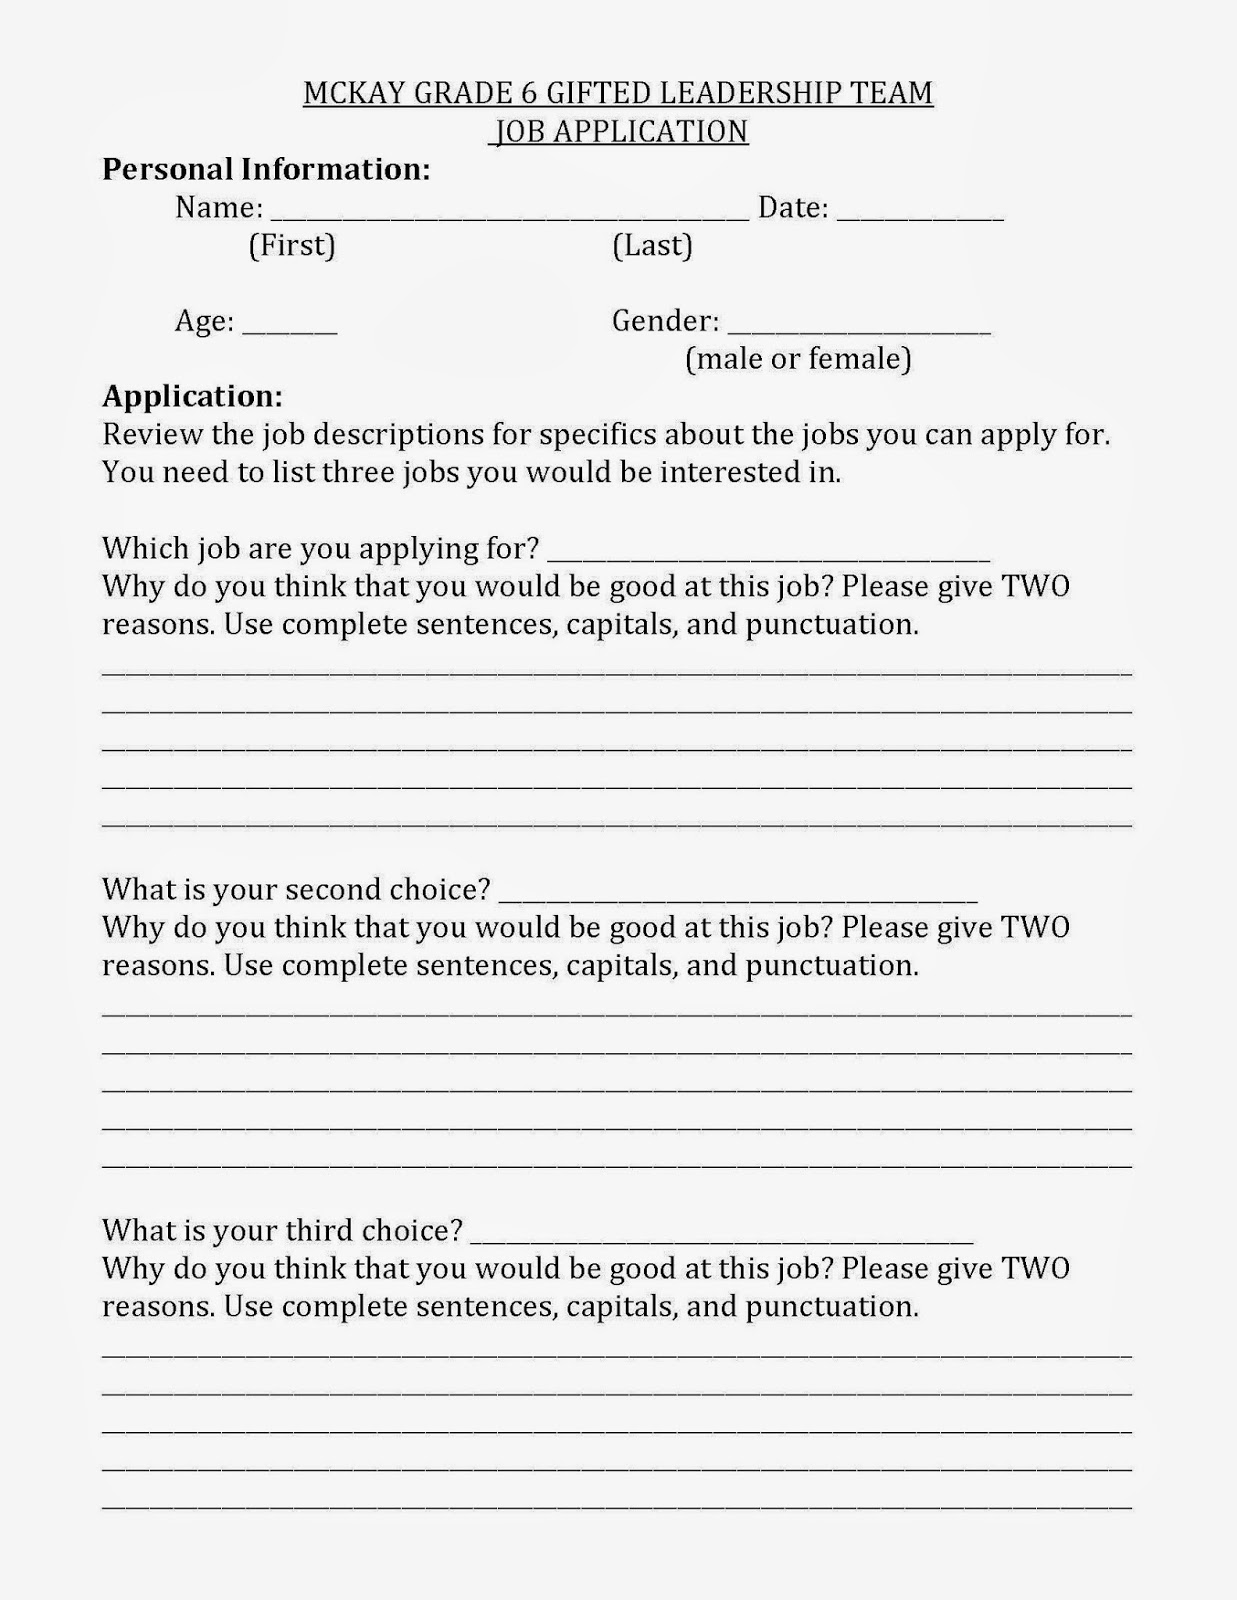 mcdonalds job application form online apply now resume mcdonalds job application form online apply now resume templates professional cv format